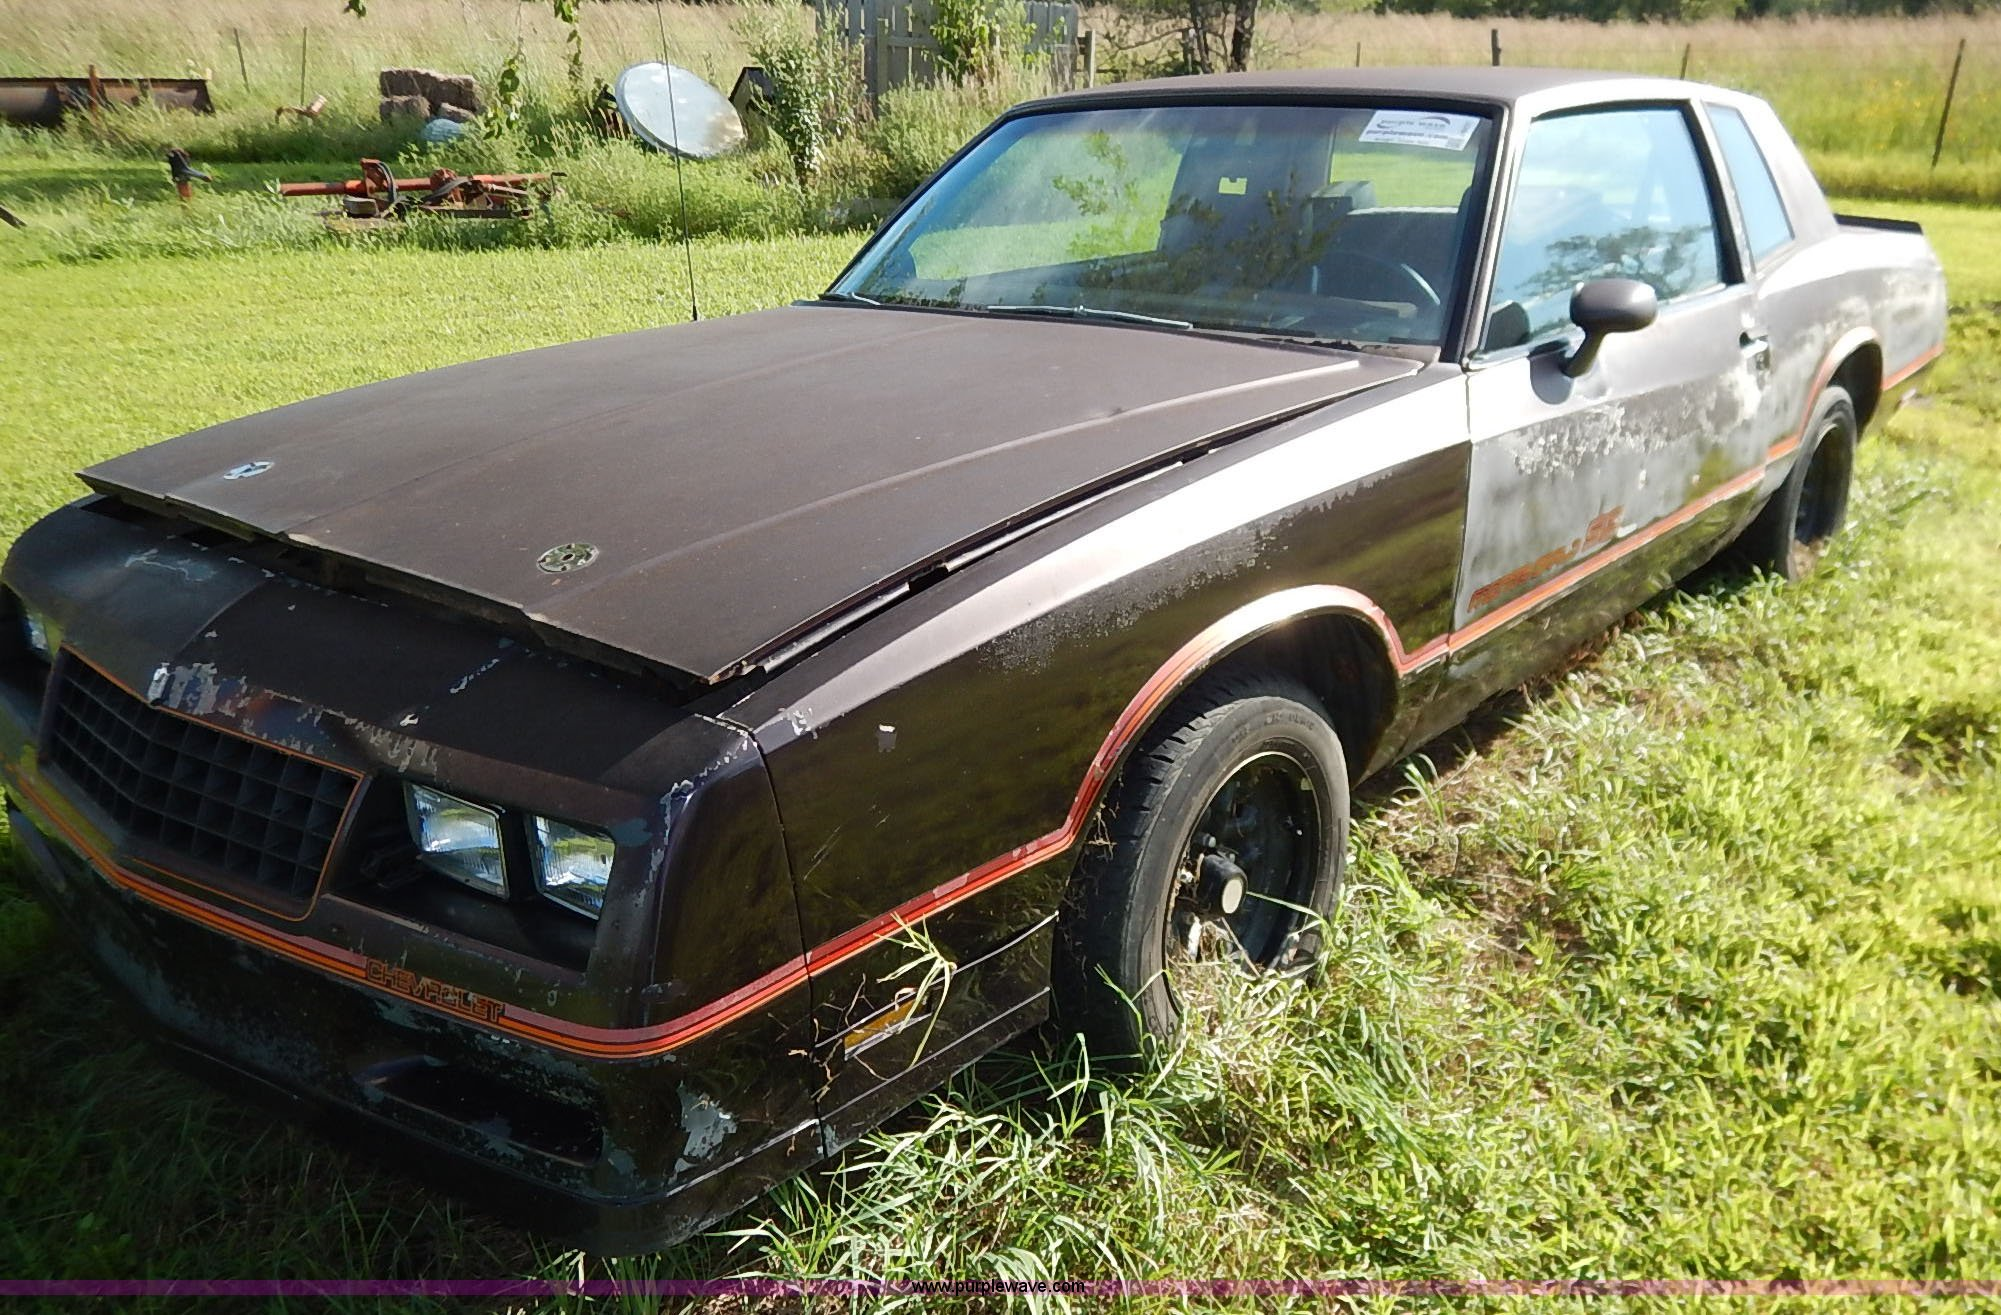 1985 Chevrolet Monte Carlo SS | Item J6431 | SOLD! September